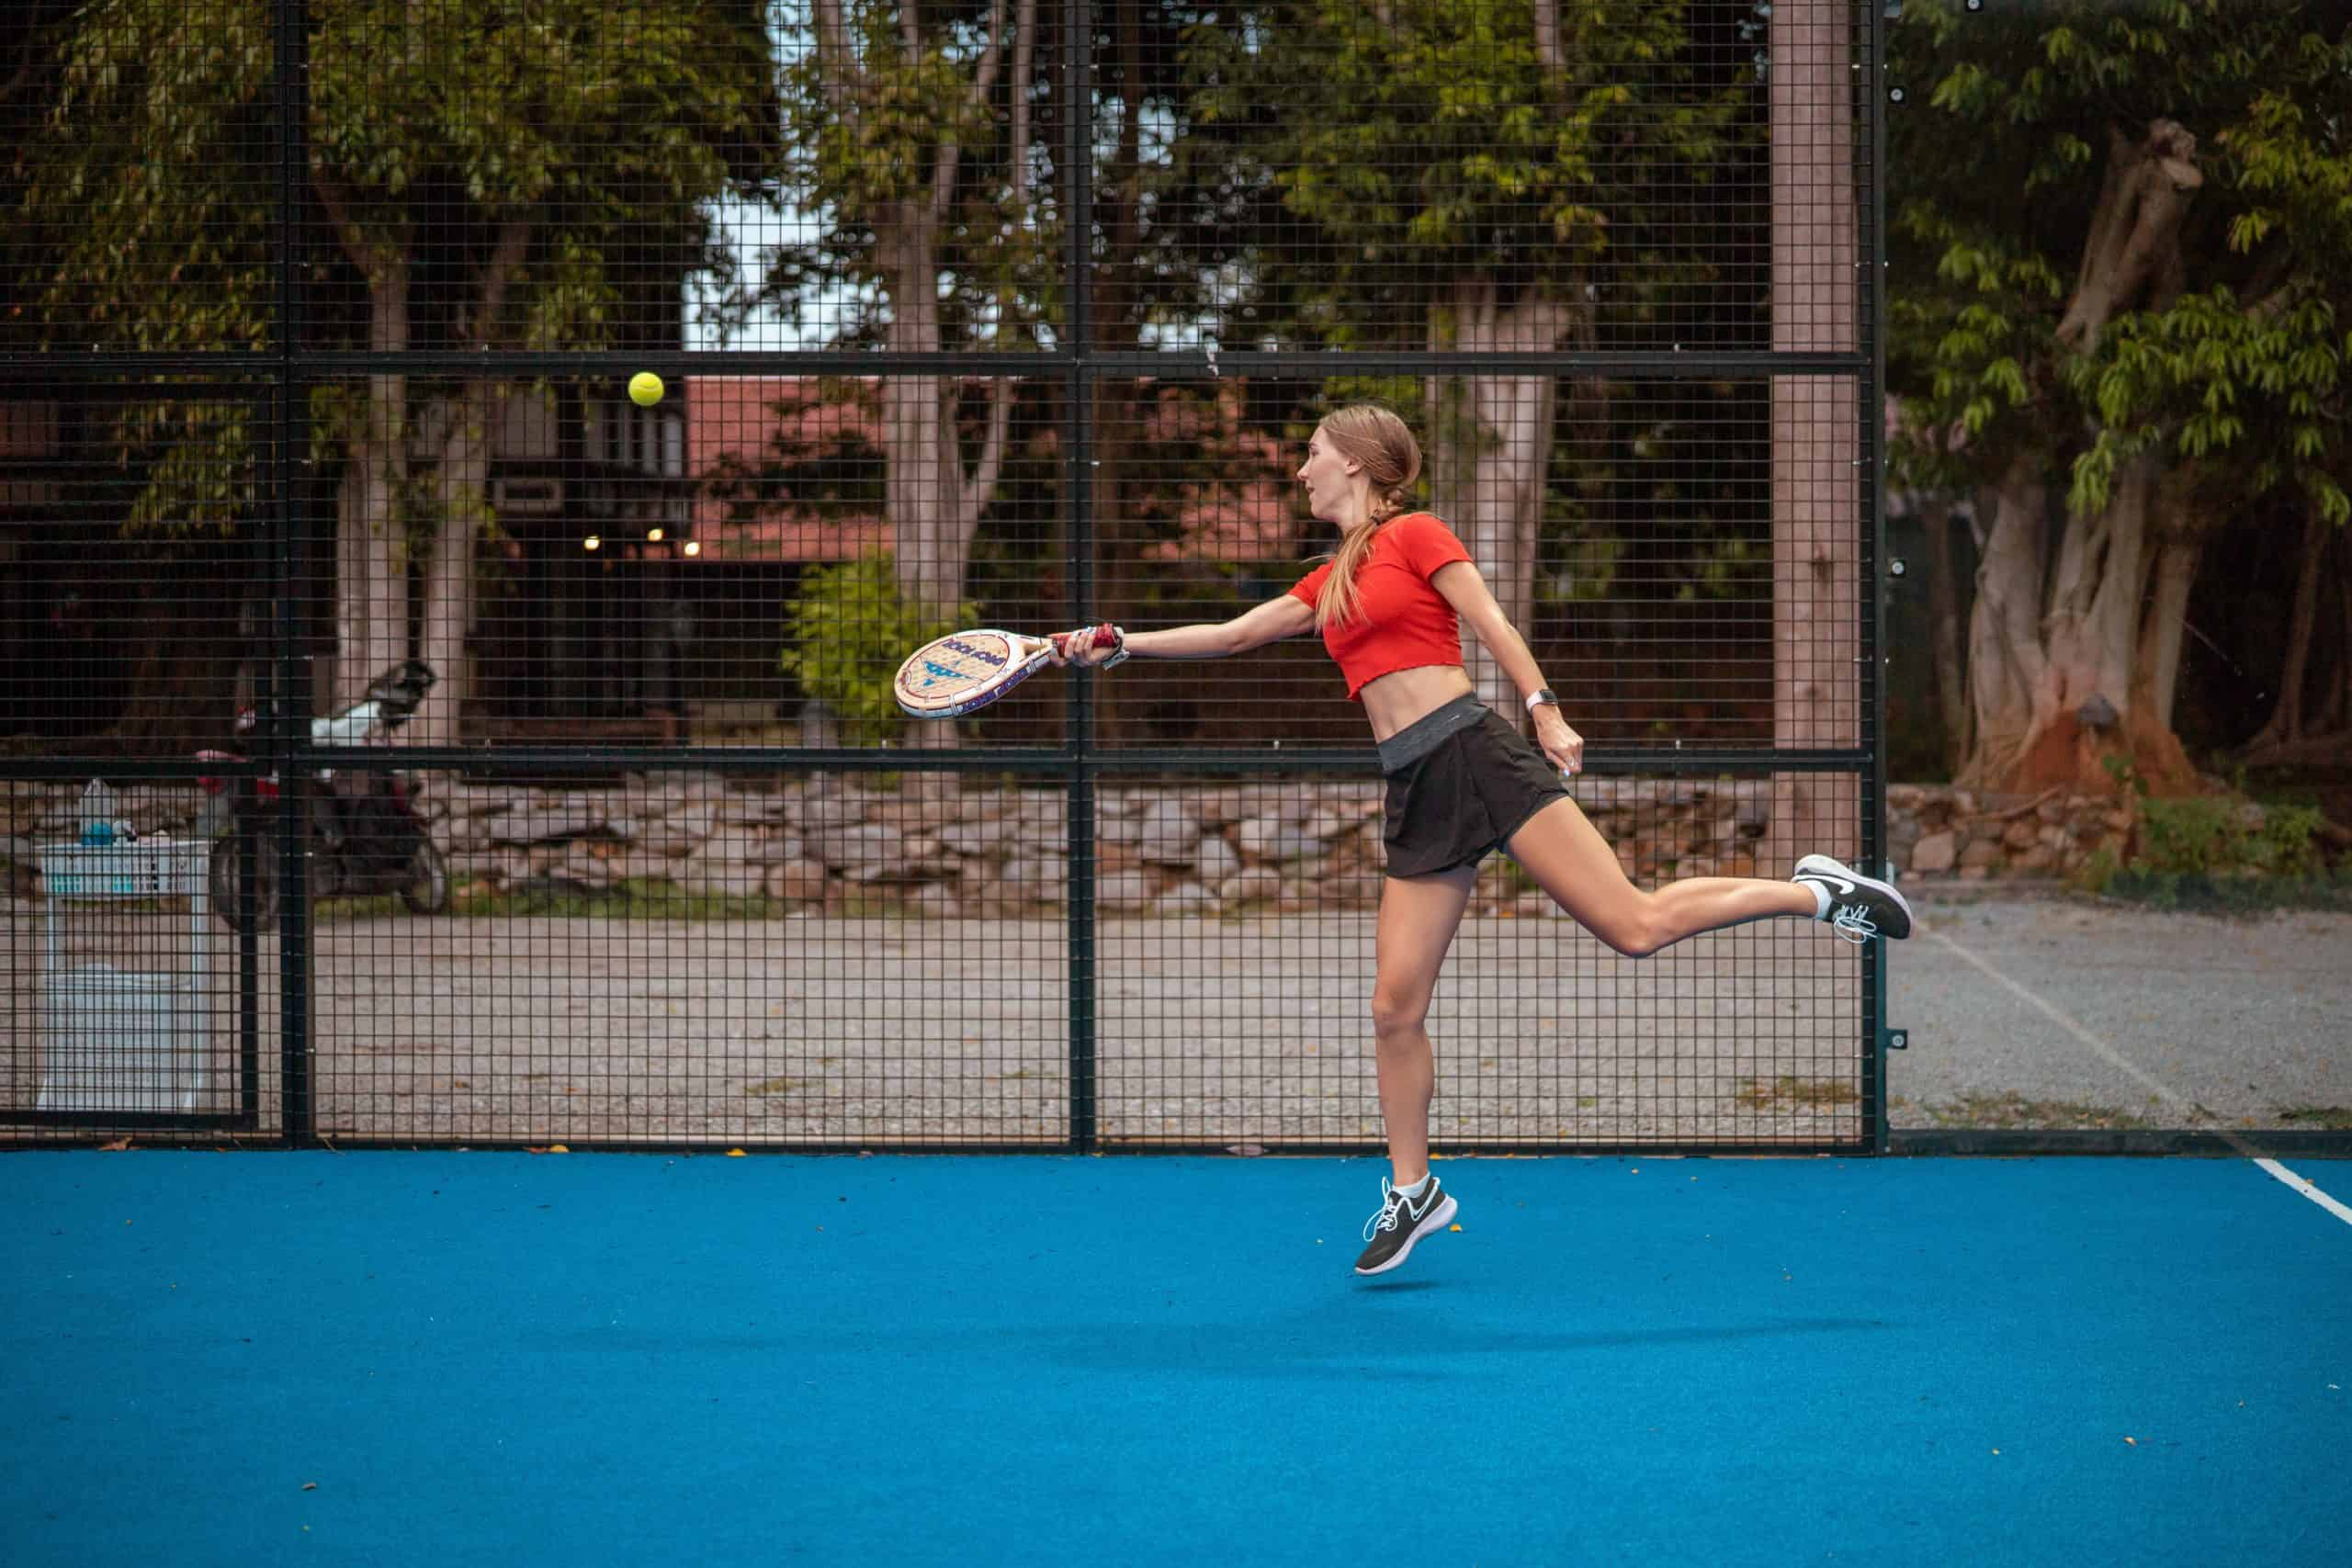 Padel is much easier than tennis - a smaller court with glass walls, reduced and soft racket.